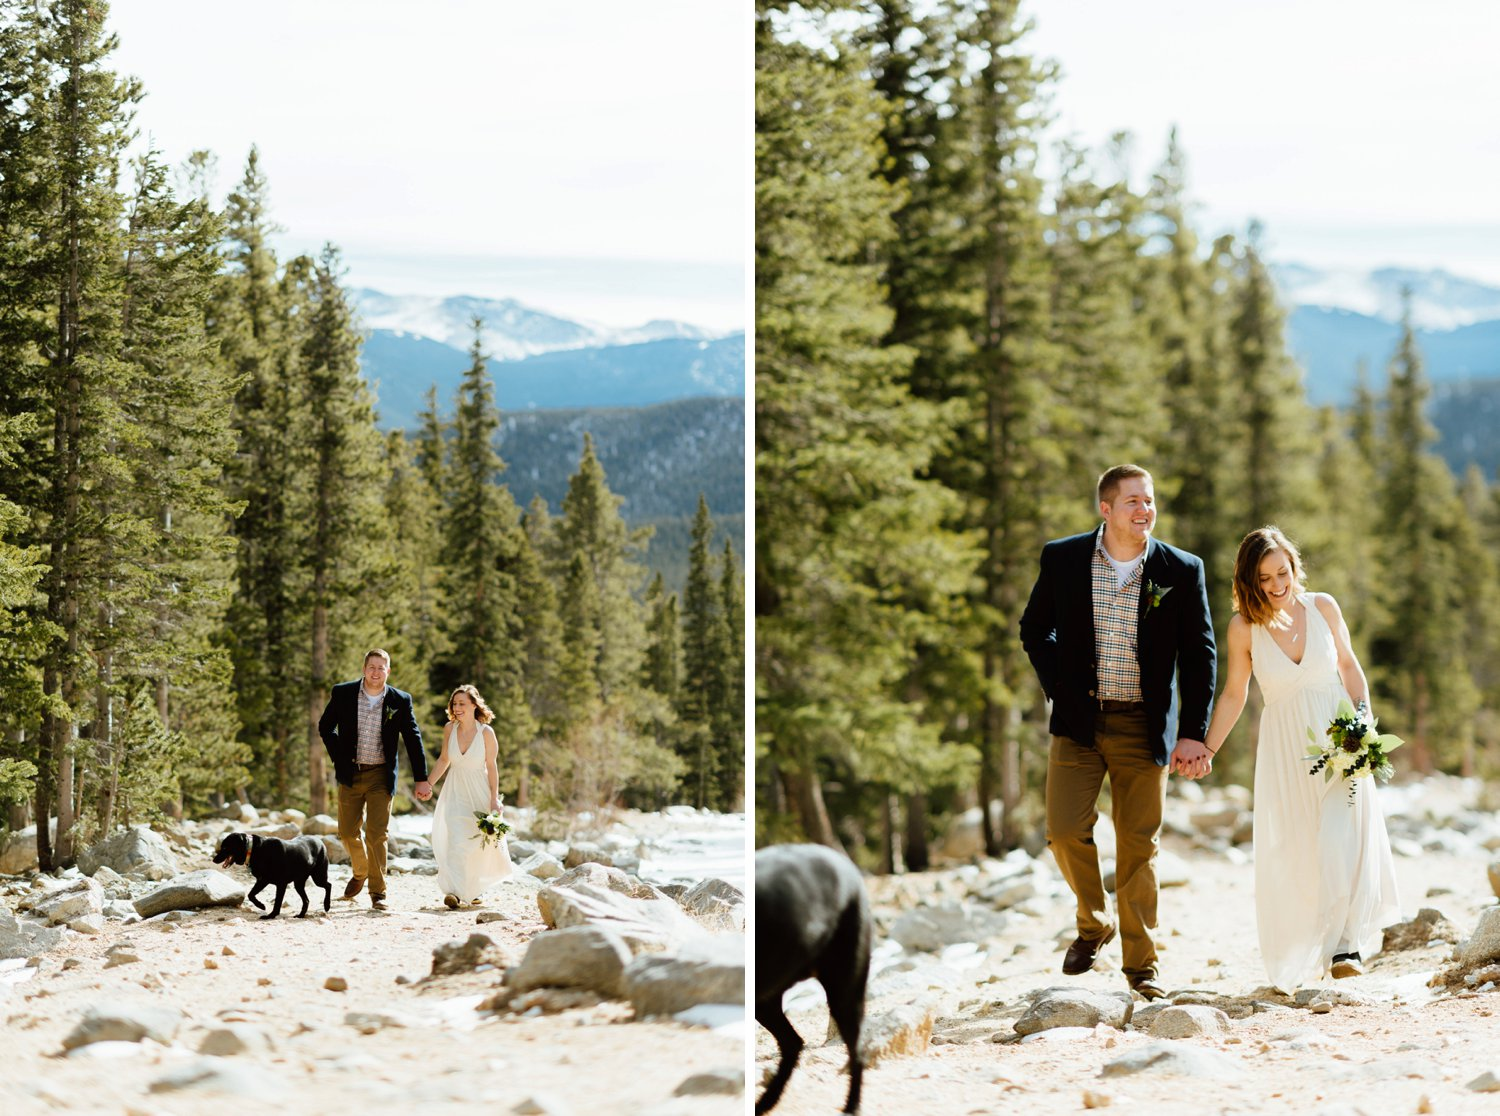 I love that this husband-and-wife-to-be brought their dog to their rustic, mountain elopement! Such an intimate way to tie the knot in Idaho Springs, Colorado.| Mountain elopement photos by adventure wedding photographer, Maddie Mae.